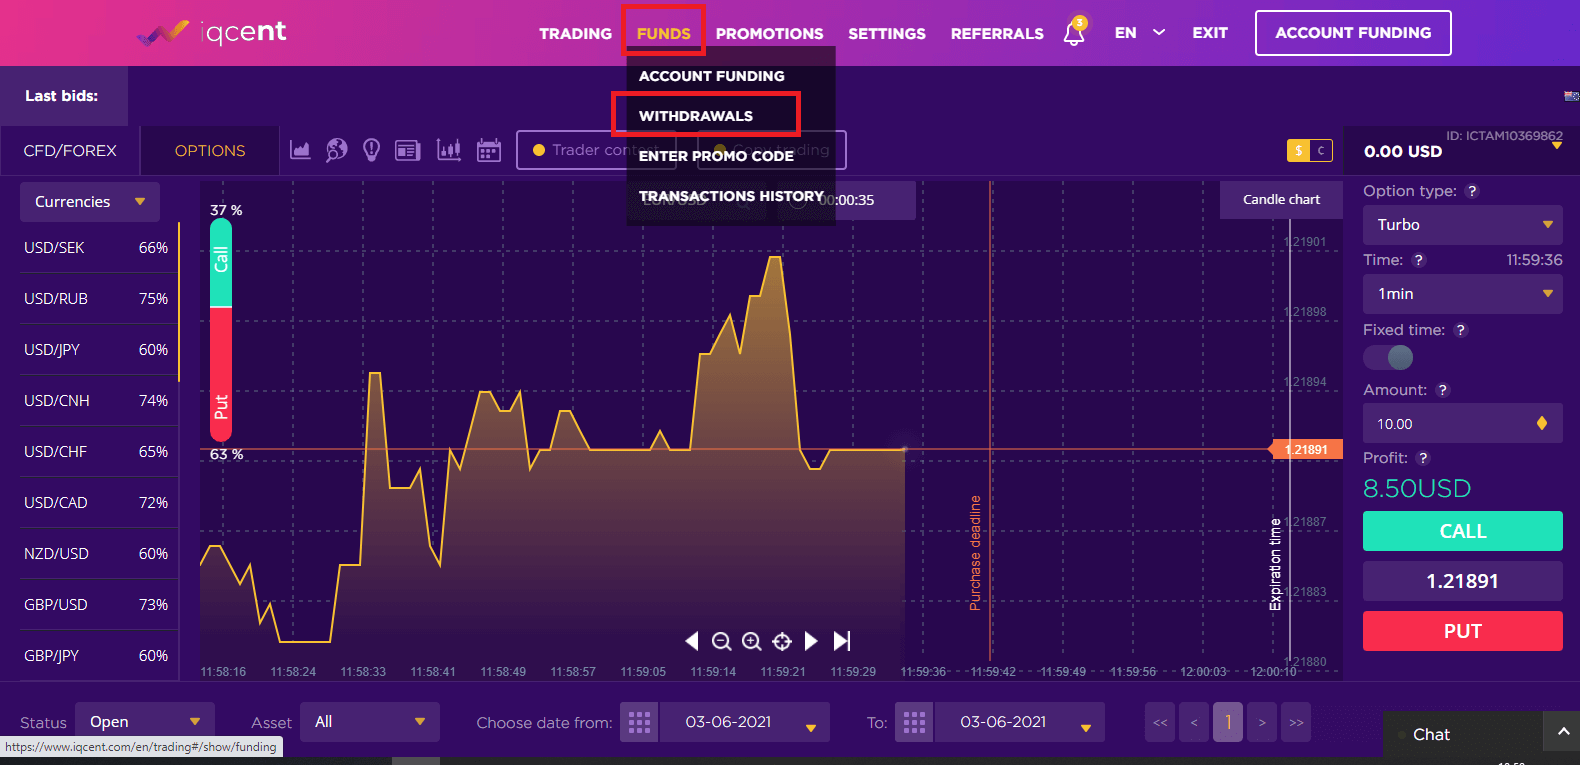 Frequently Asked Questions (FAQ) of Trading in IQcent